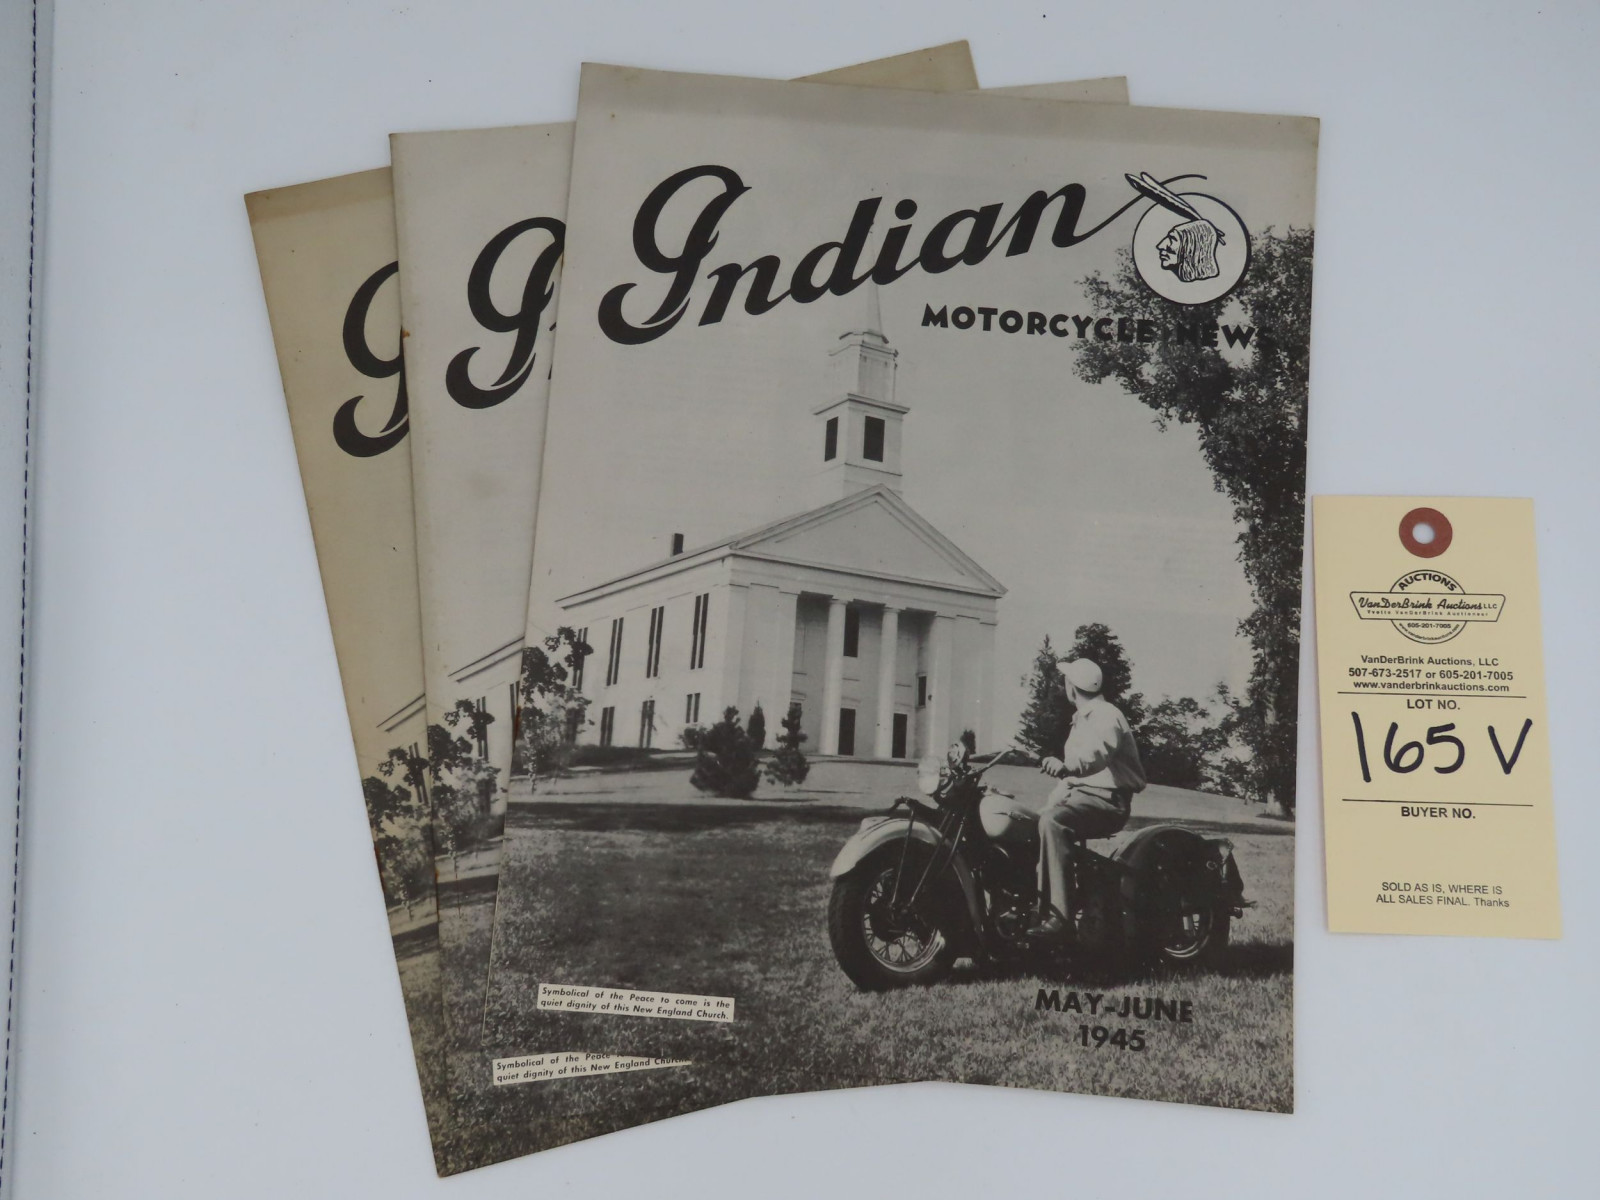 Indian Motorcycle News - May-June 1945 - Image 1